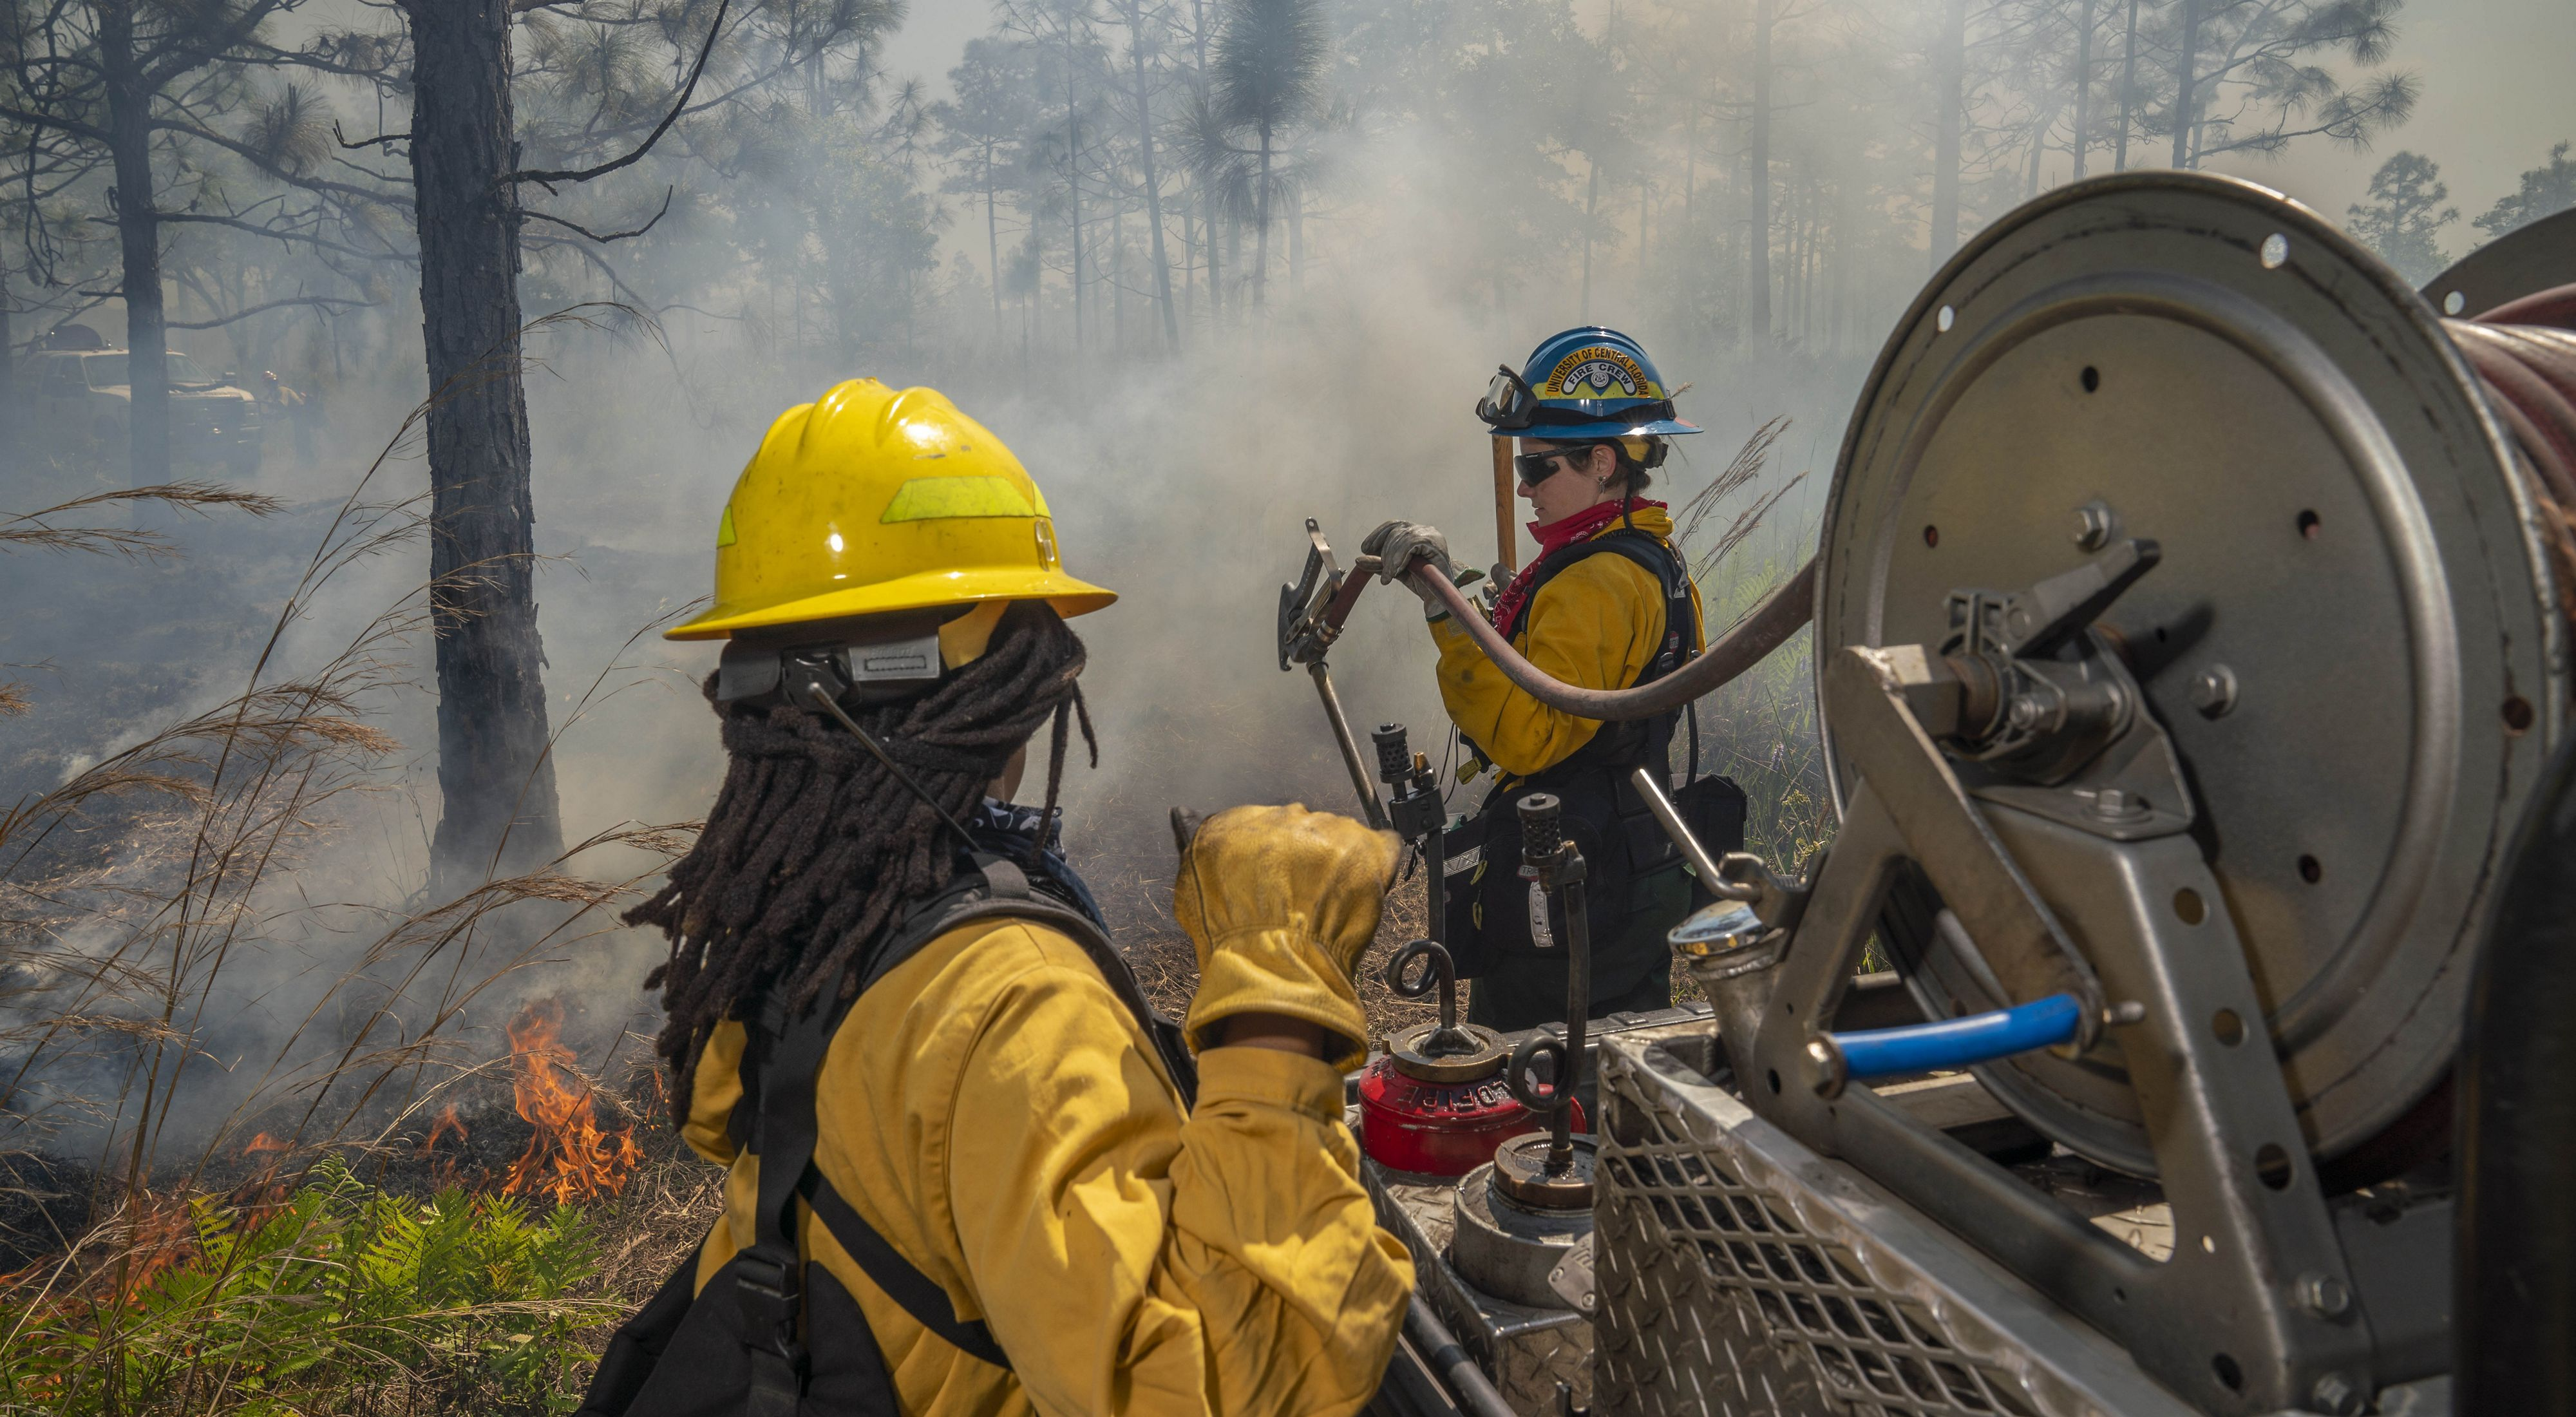 Two wildland fire workers manage a hose reel on a Type 6 engine during a controlled burn in Florida.